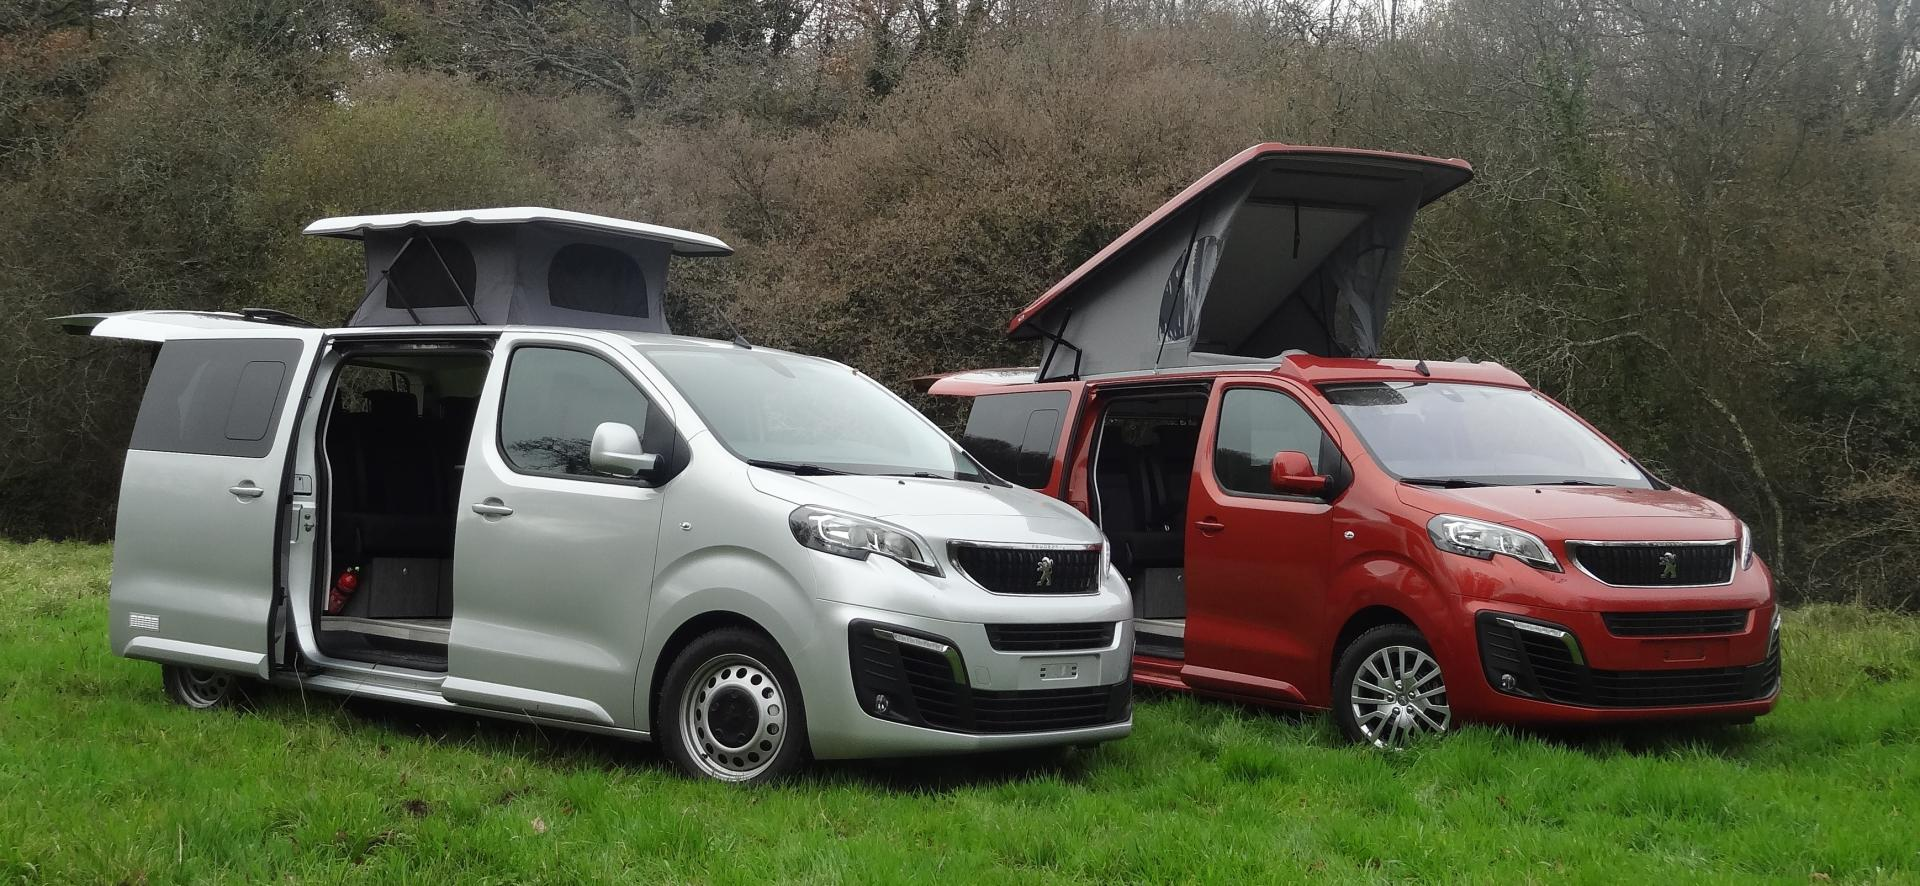 Amenagement peugeot expert en camping car